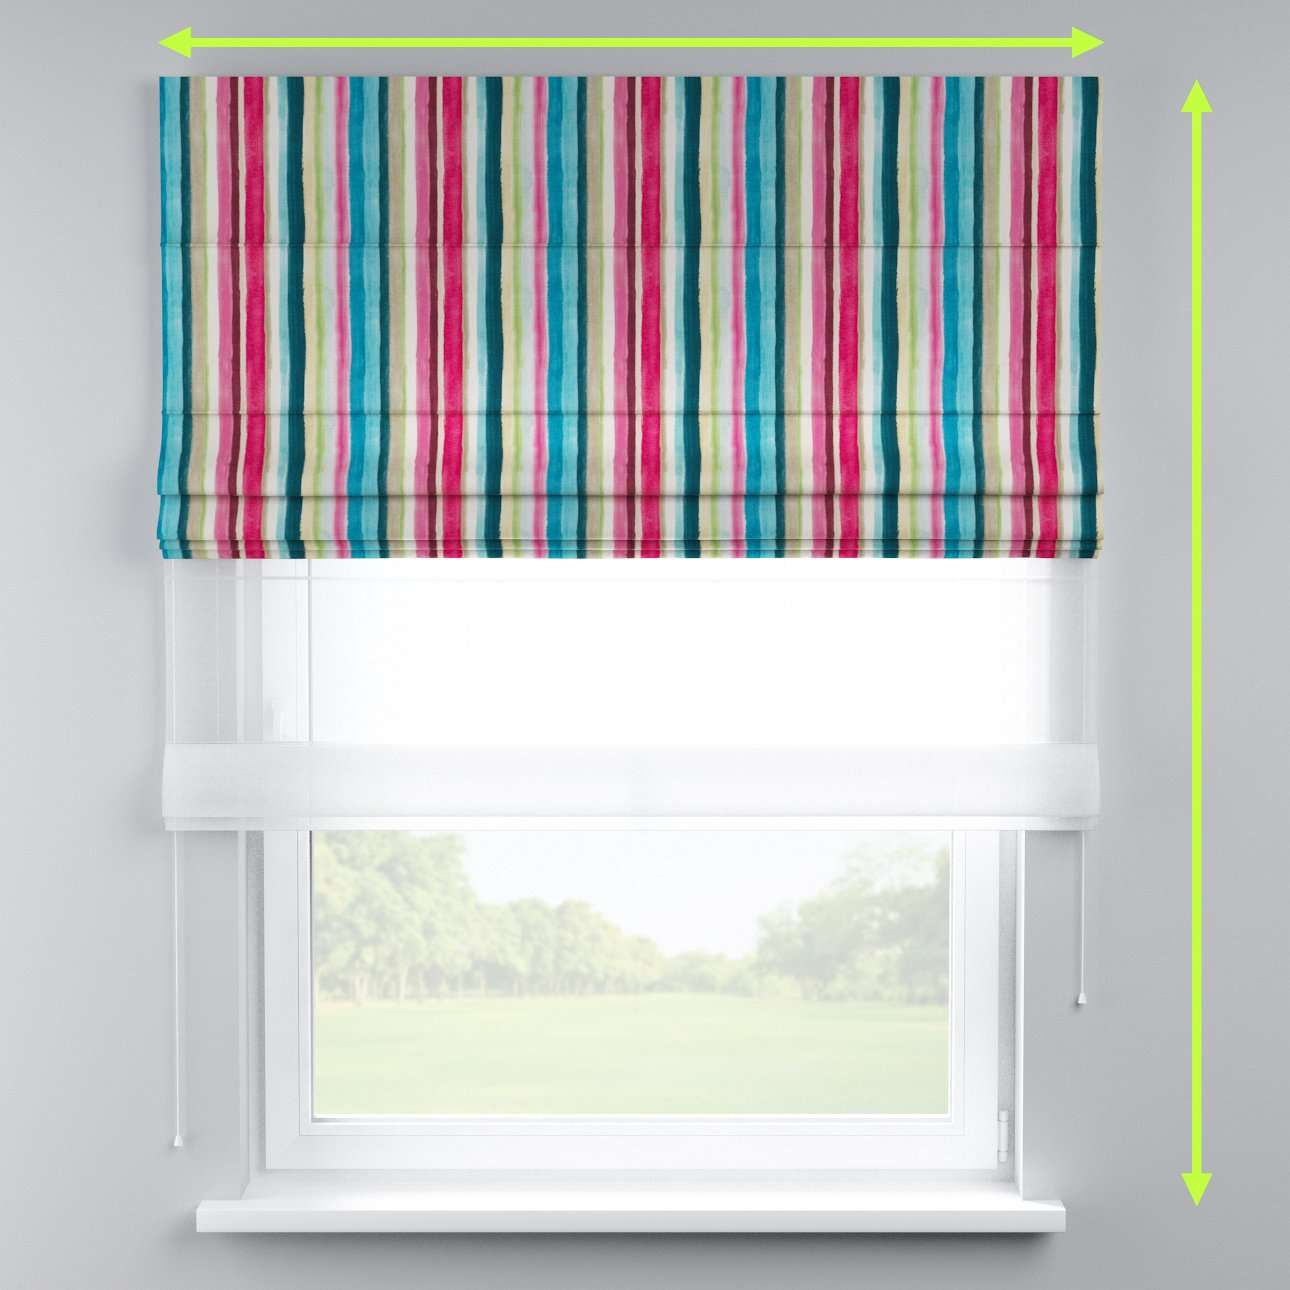 Voile and fabric roman blind (DUO II) in collection Monet, fabric: 140-09